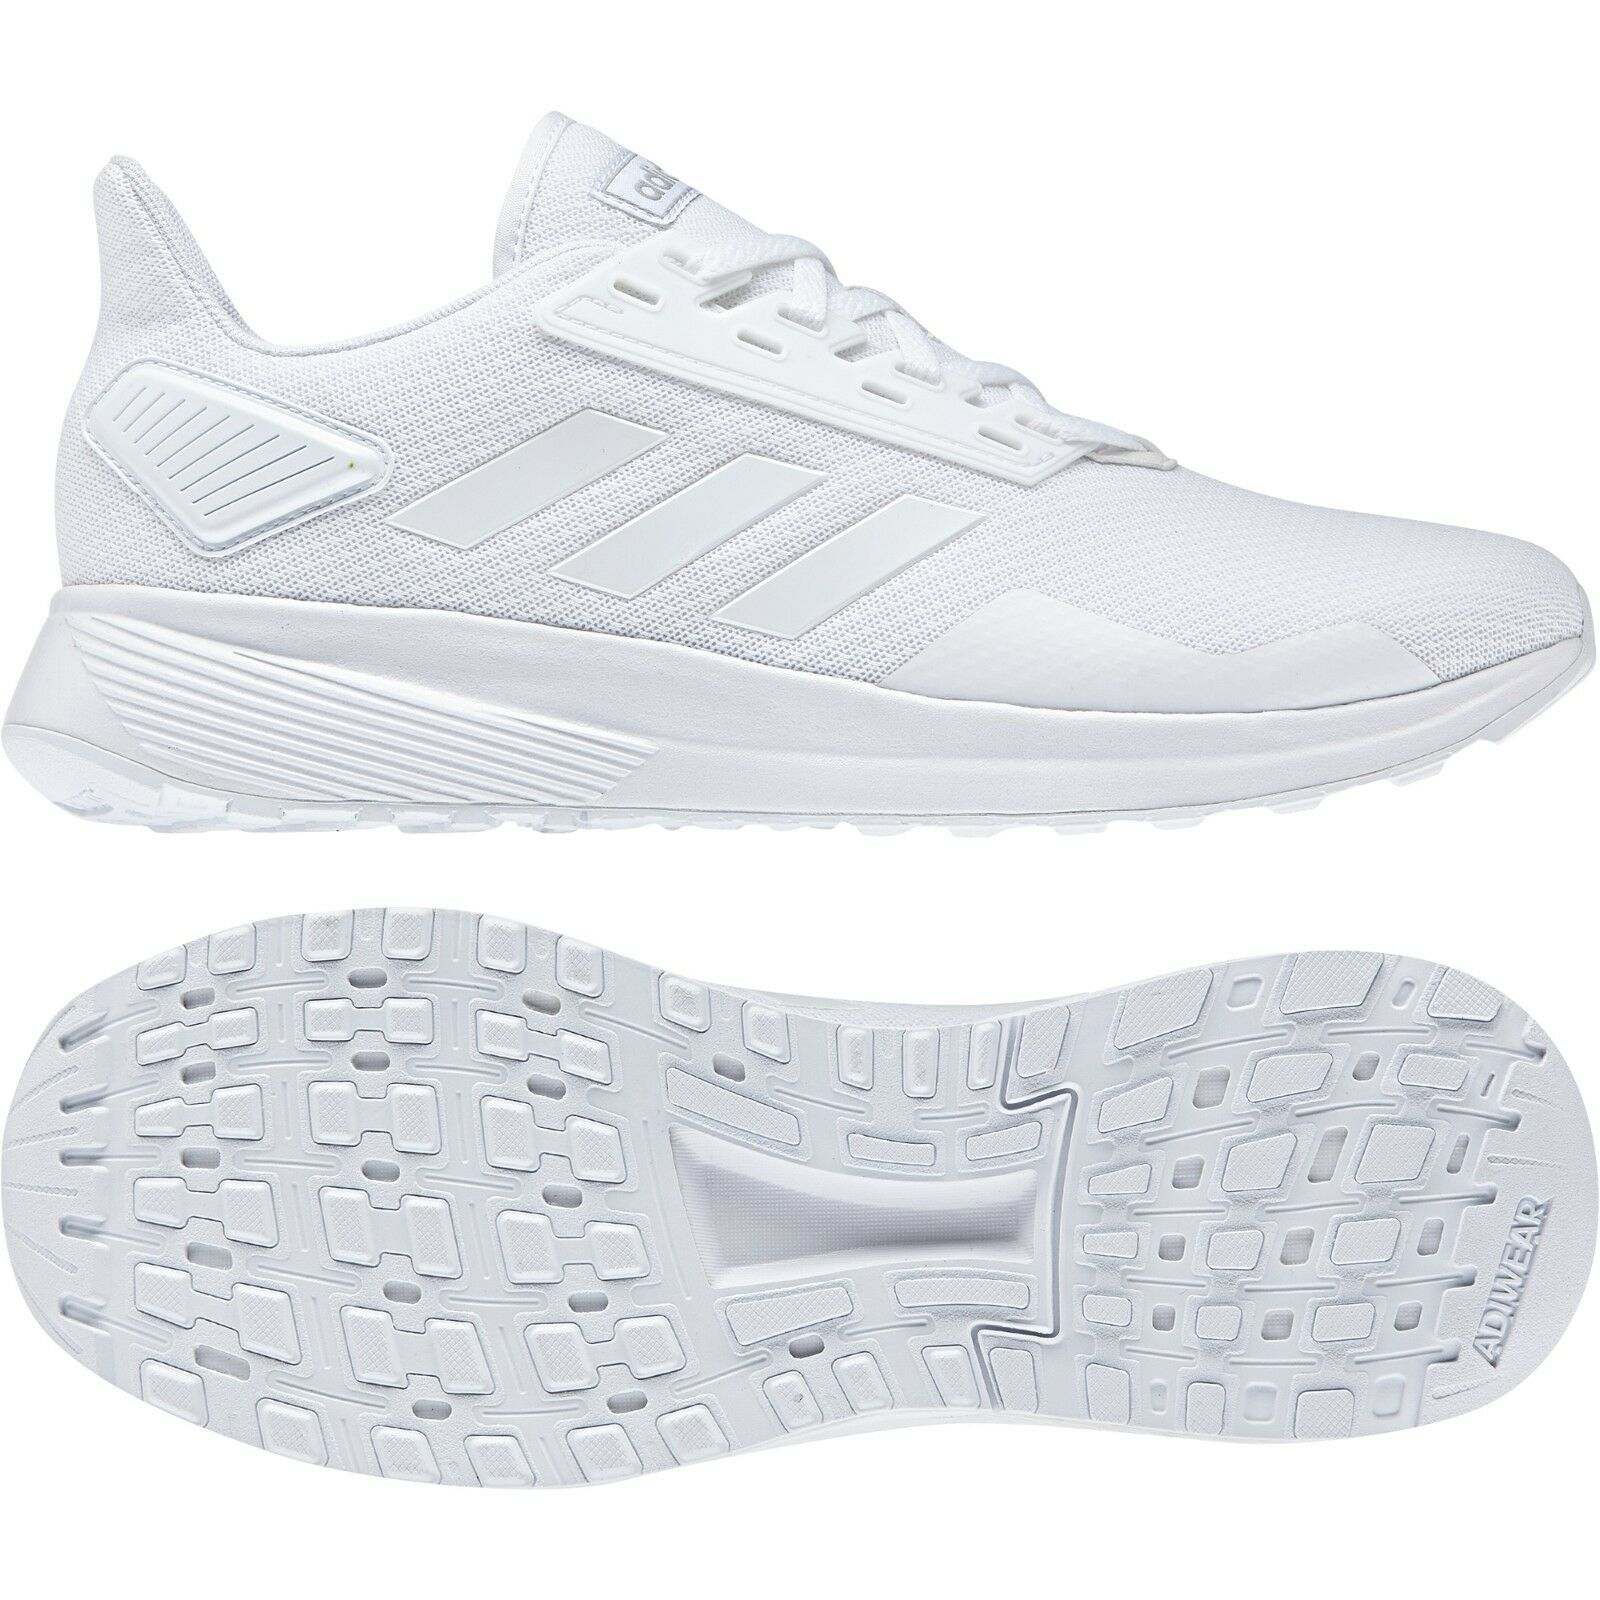 Adidas Men shoes Essential Duramo 9 Training Fitness Fashion B96580 Trainers